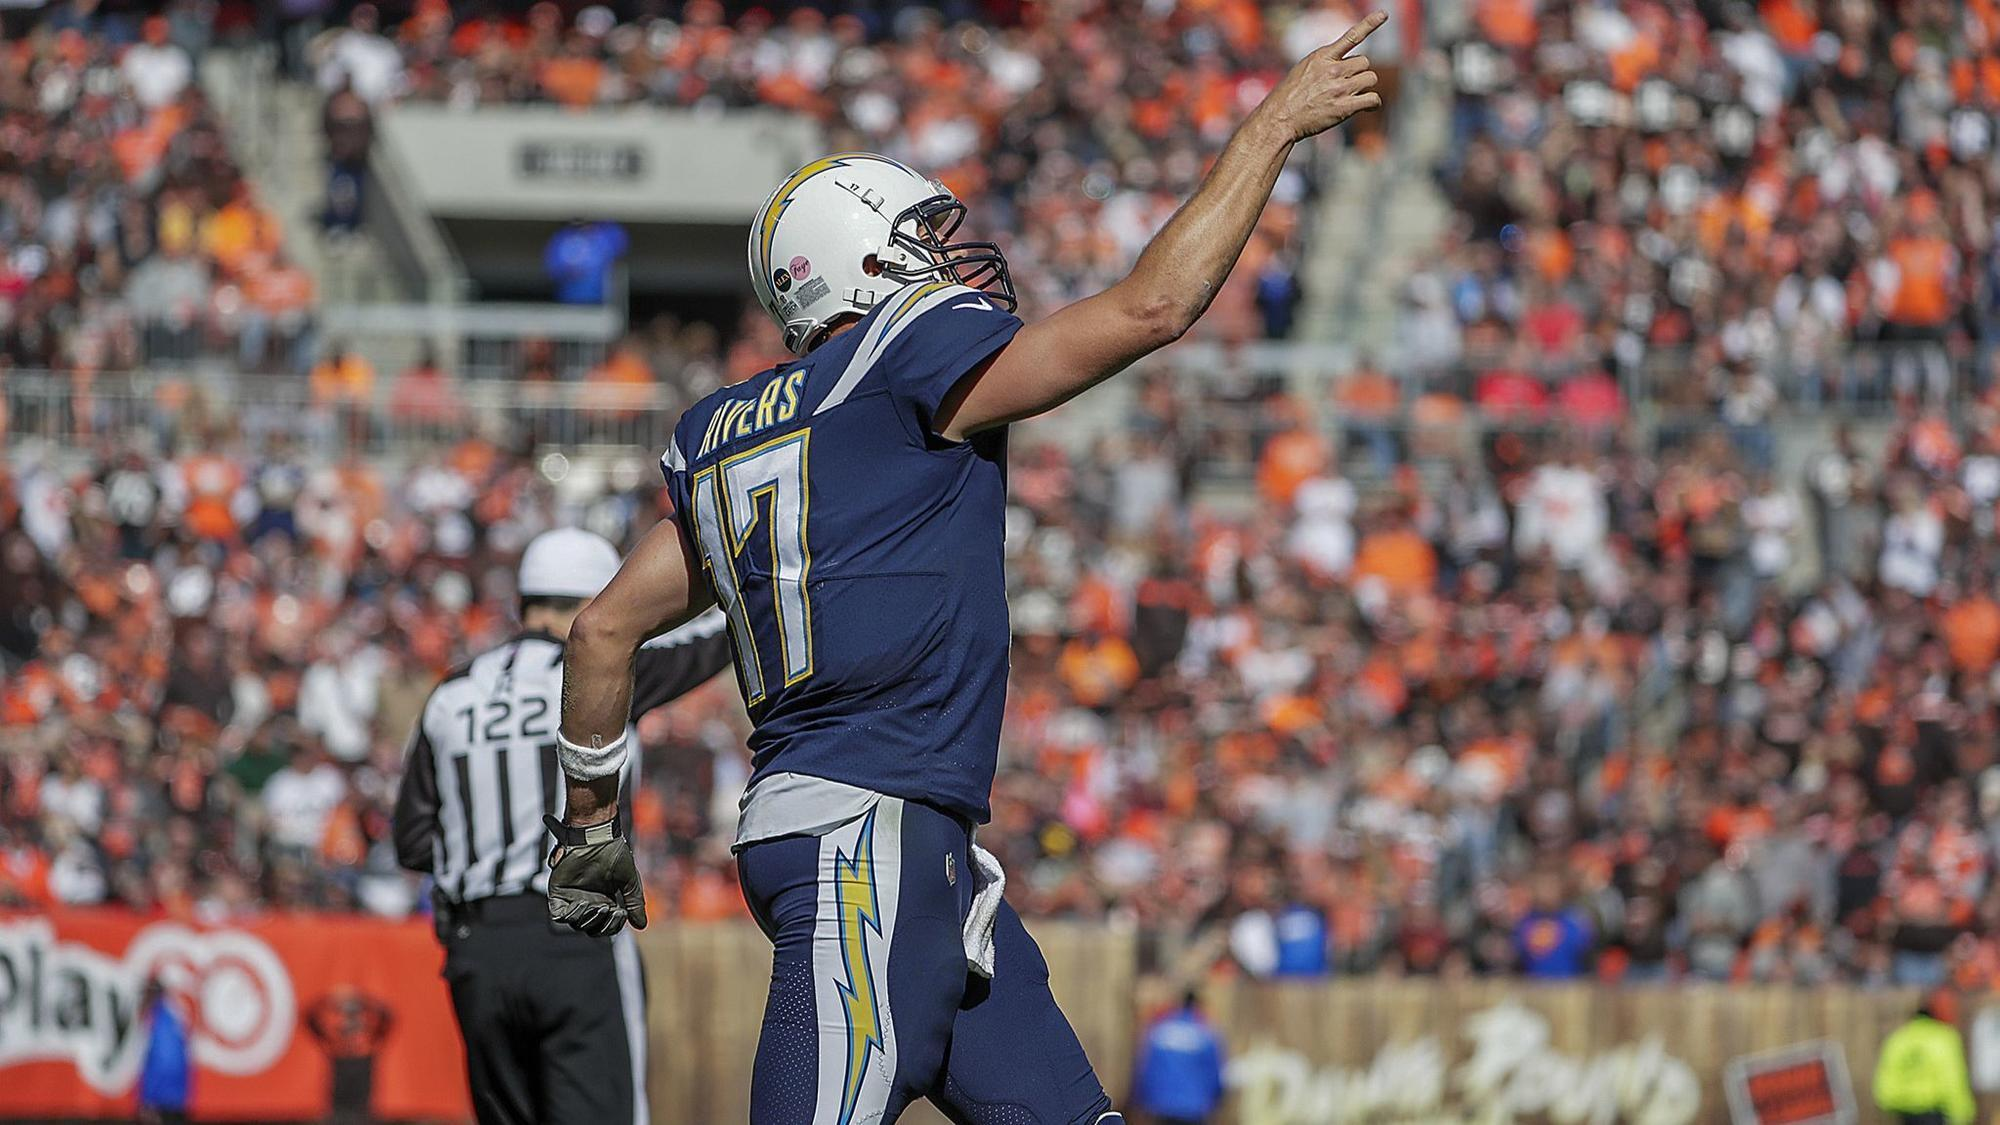 La-sp-chargers-browns-takeaways-20181015